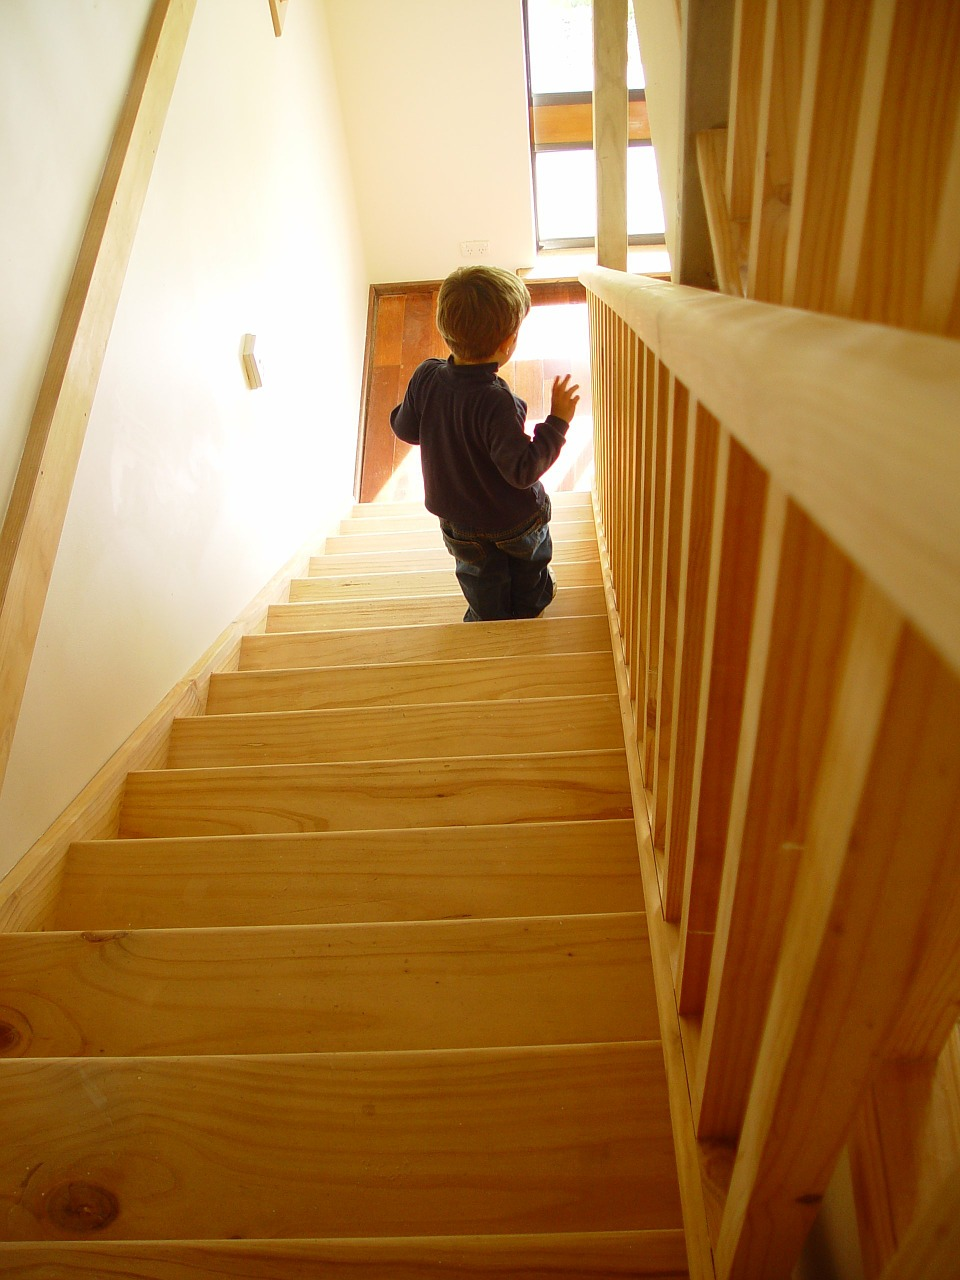 stair climb child learn to walk free picture